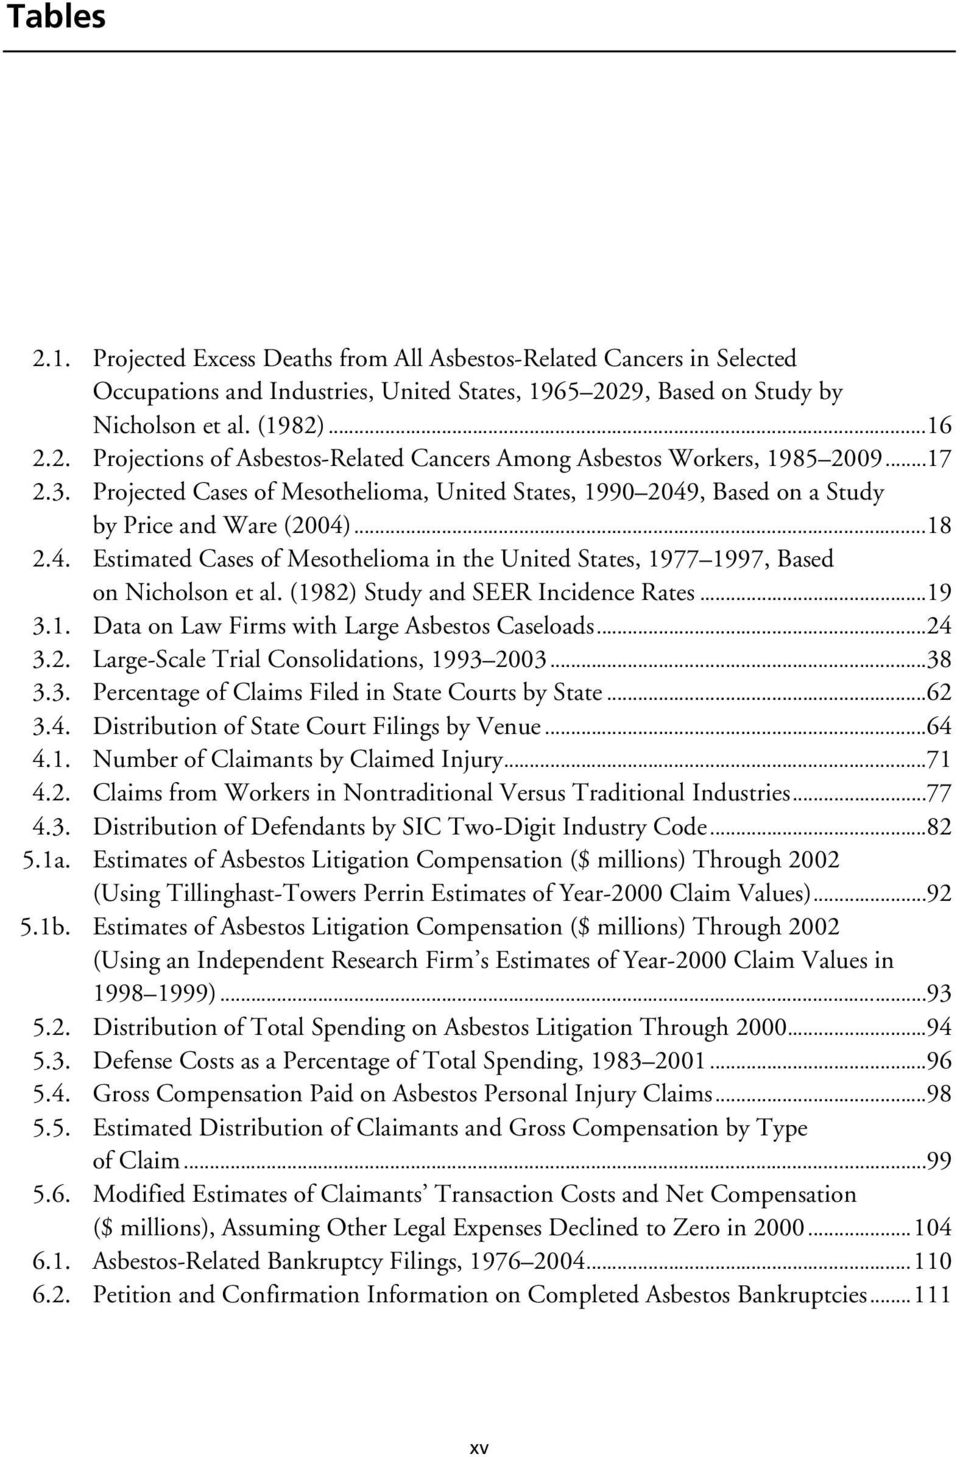 (1982) Study and SEER Incidence Rates...19 3.1. Data on Law Firms with Large Asbestos Caseloads...24 3.2. Large-Scale Trial Consolidations, 1993 2003...38 3.3. Percentage of Claims Filed in State Courts by State.